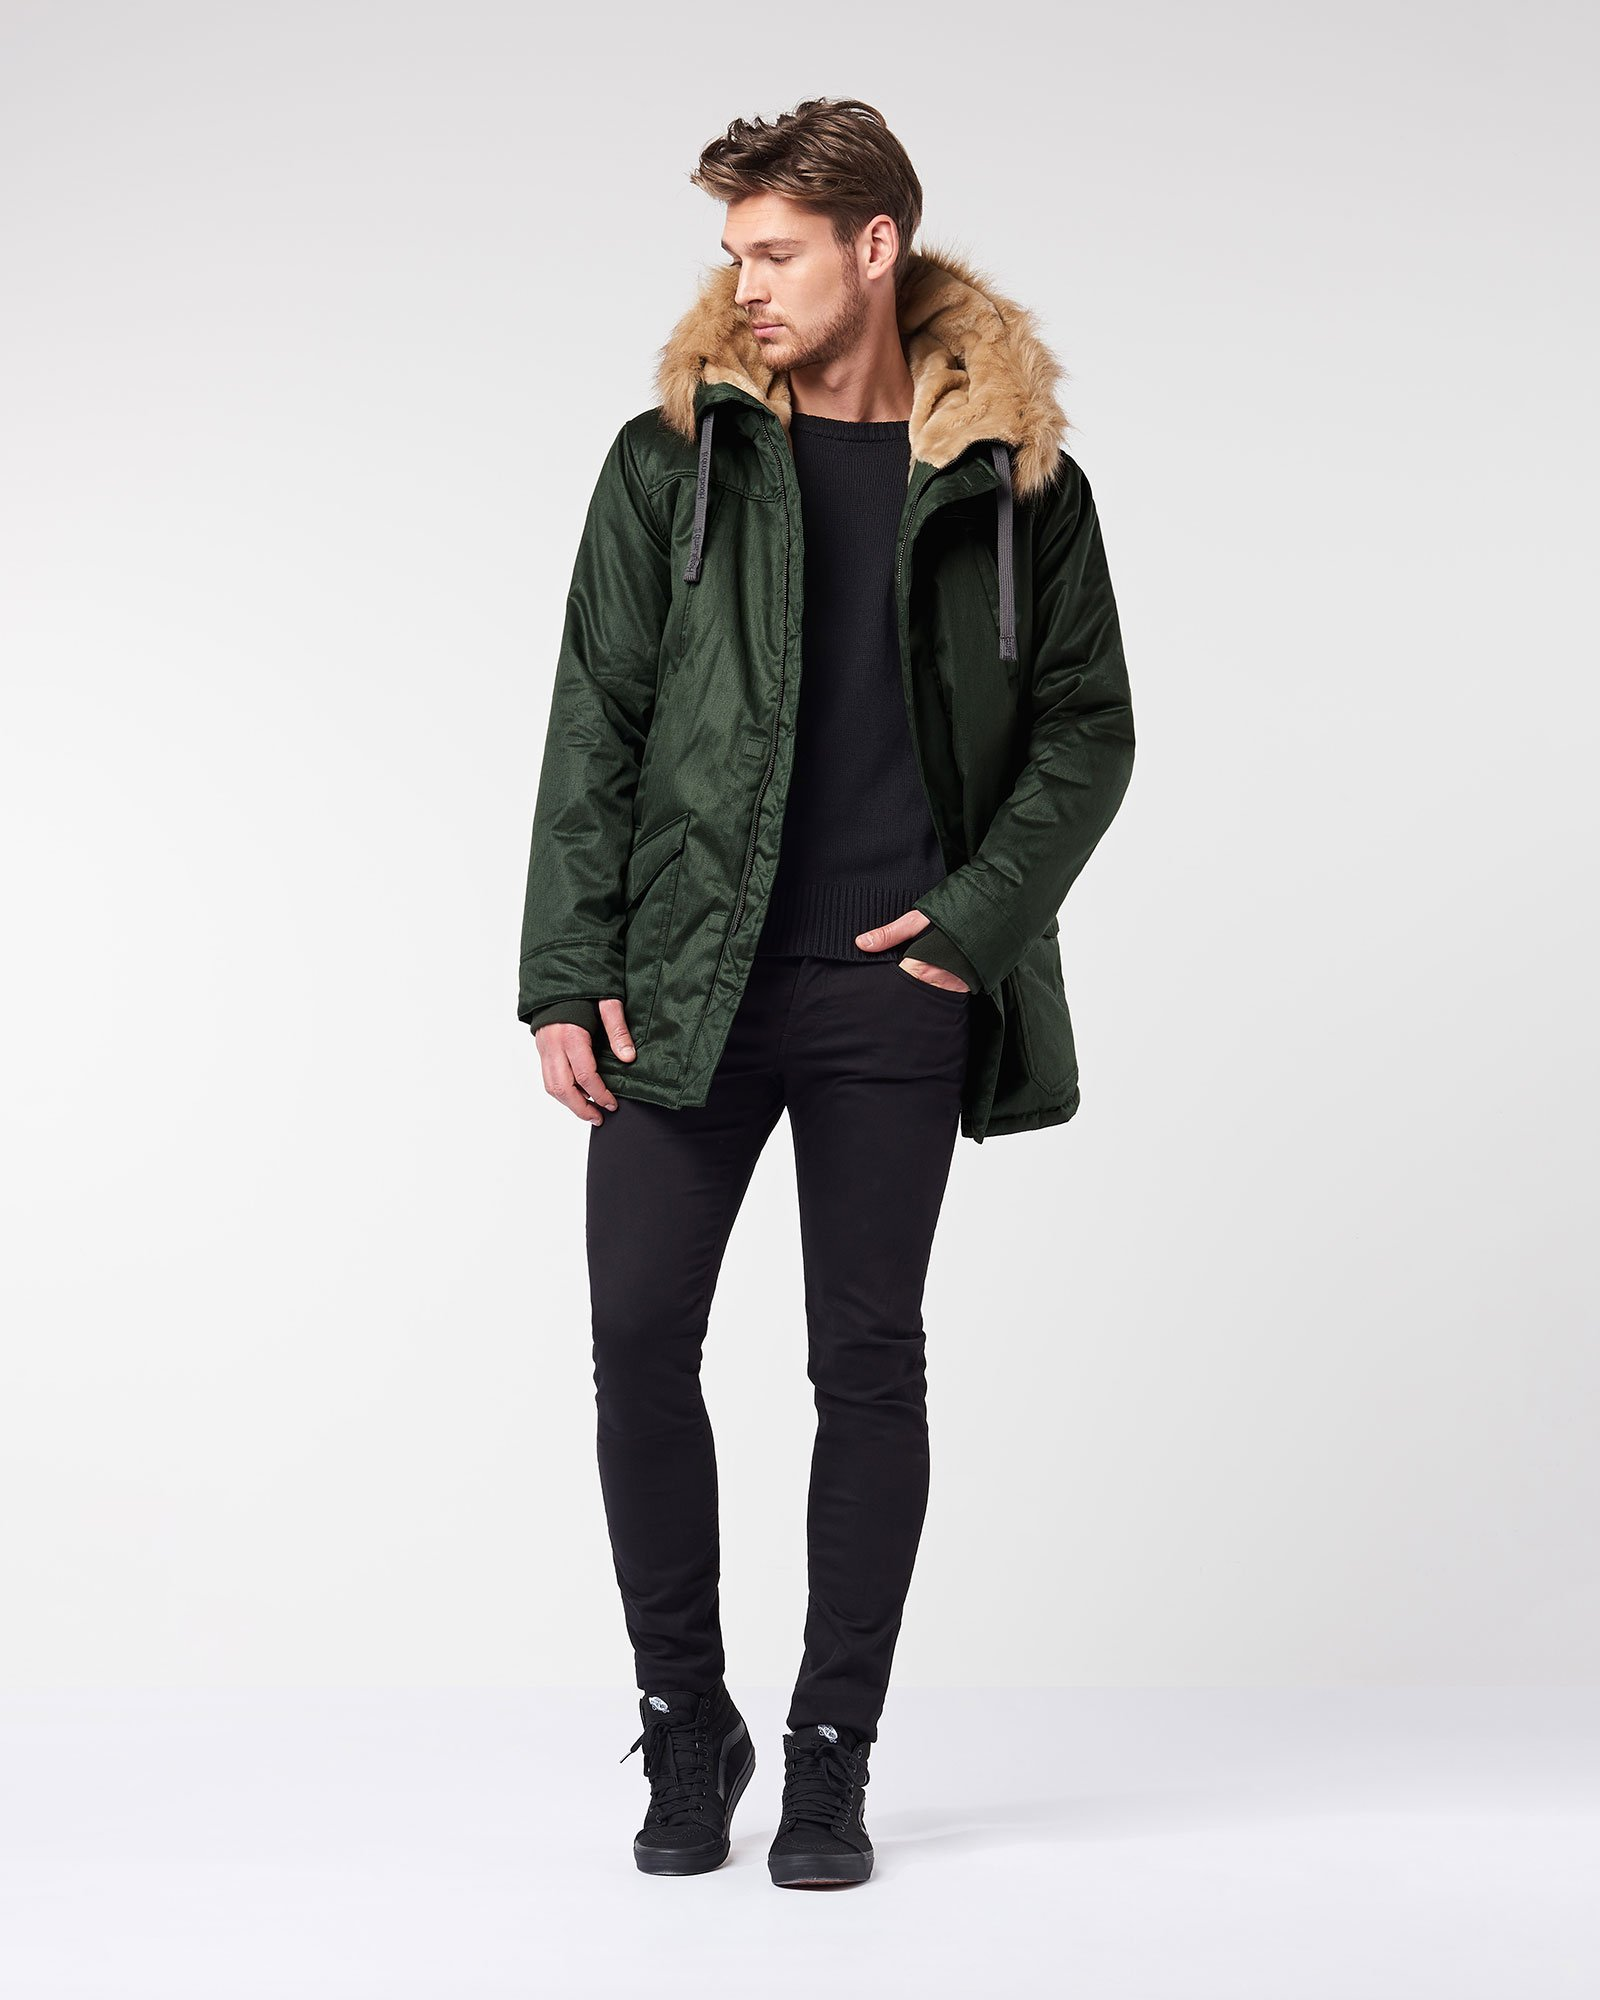 e9996fbdc242 Men s Nordic Parka in Deep Army Green (FW18) by Hoodlamb - Official ...